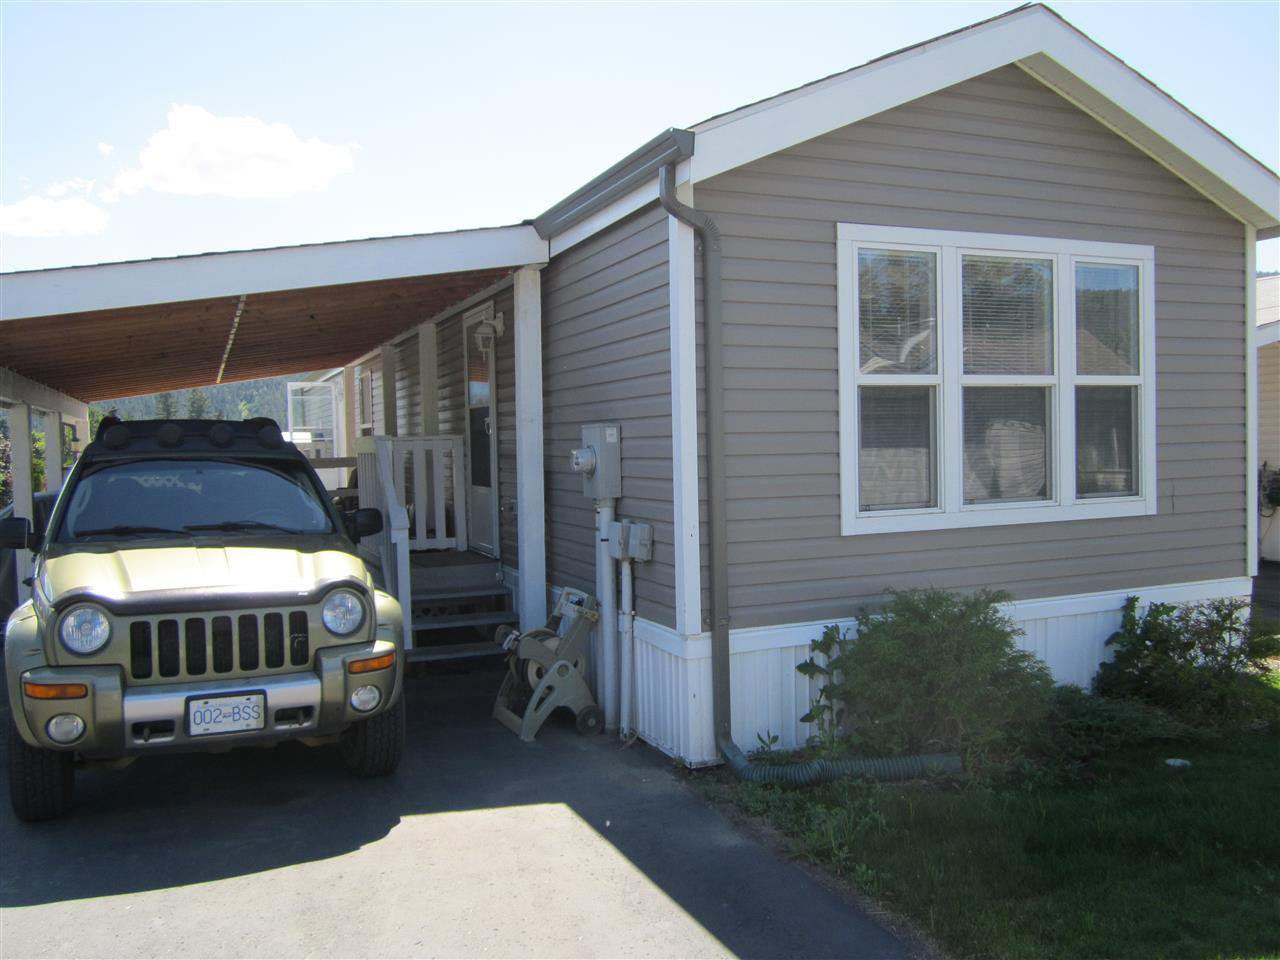 Main Photo: 302 JERSEY Place in Williams Lake: Williams Lake - City Manufactured Home for sale (Williams Lake (Zone 27))  : MLS®# R2025969